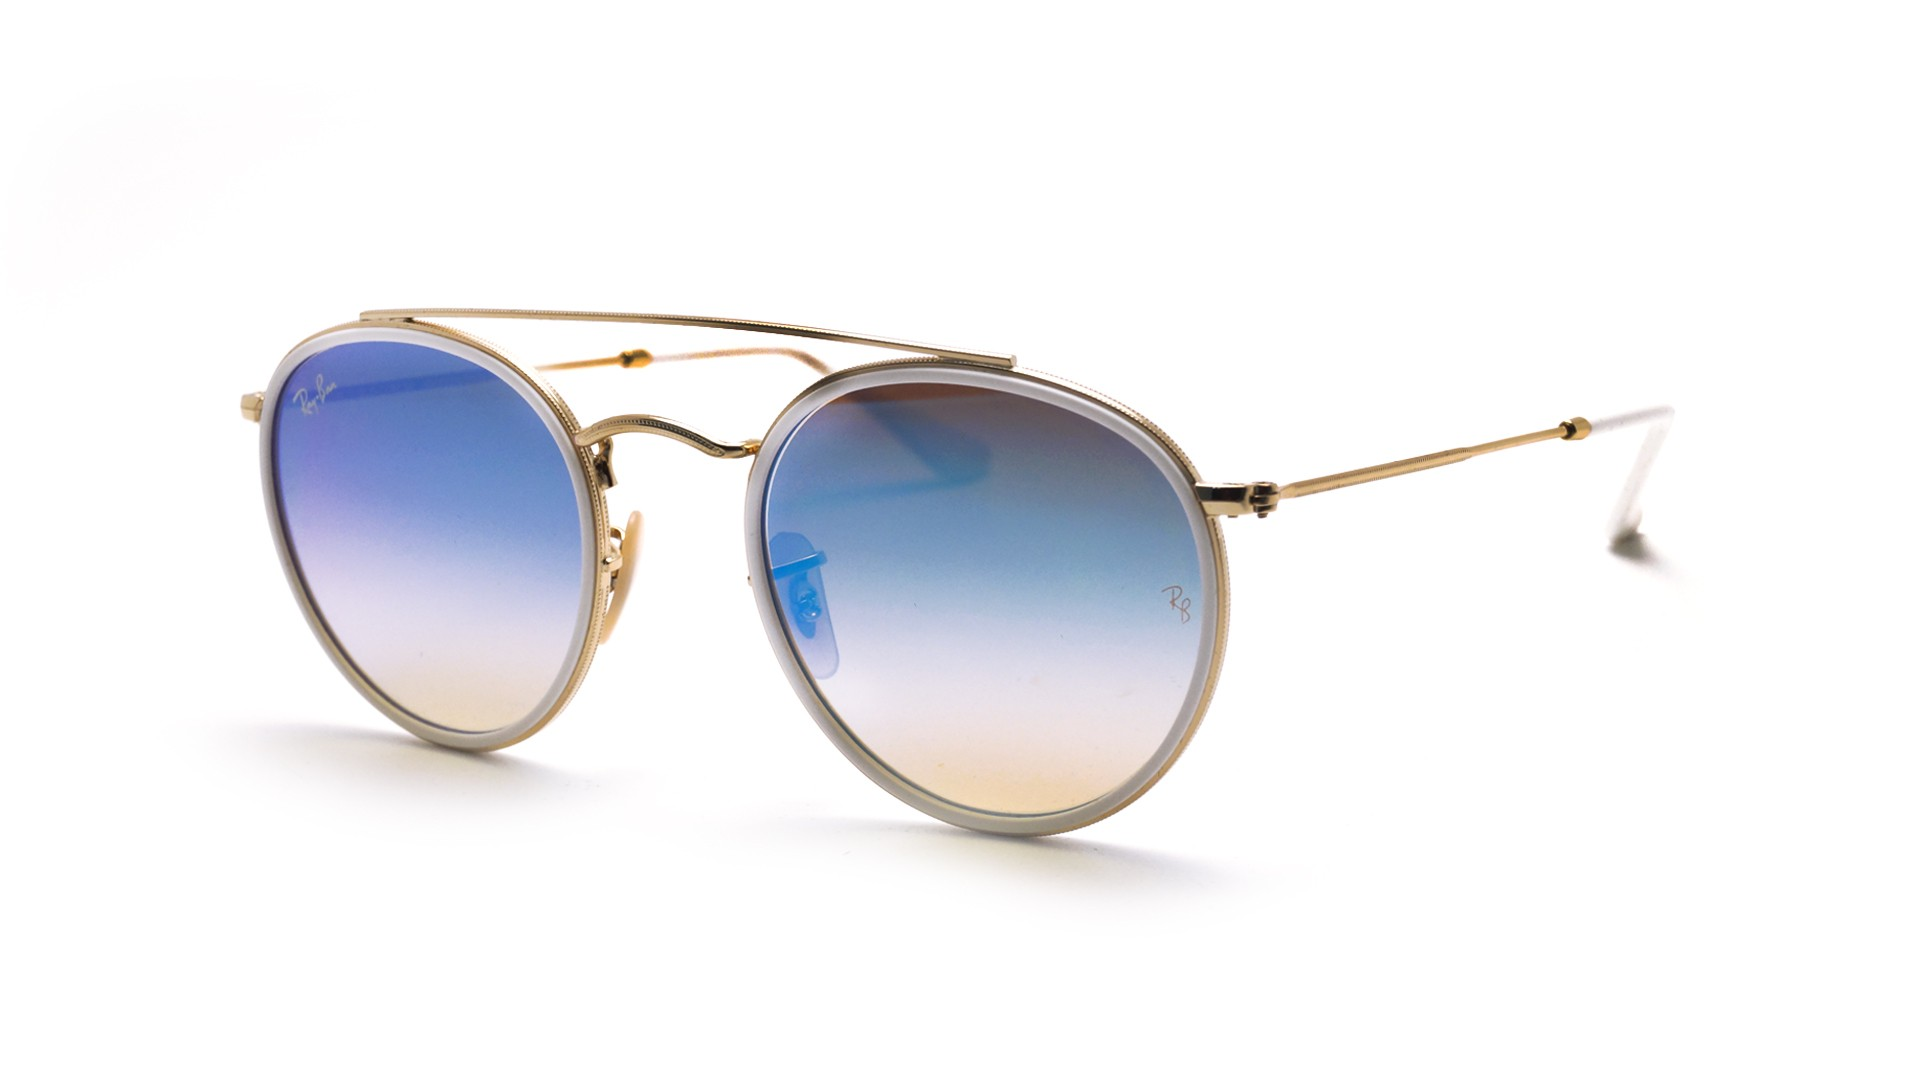 e72a95c006 Sunglasses Ray-Ban Round Double Bridge Gold RB3647N 001 4O 51-22 Medium  Gradient Mirror